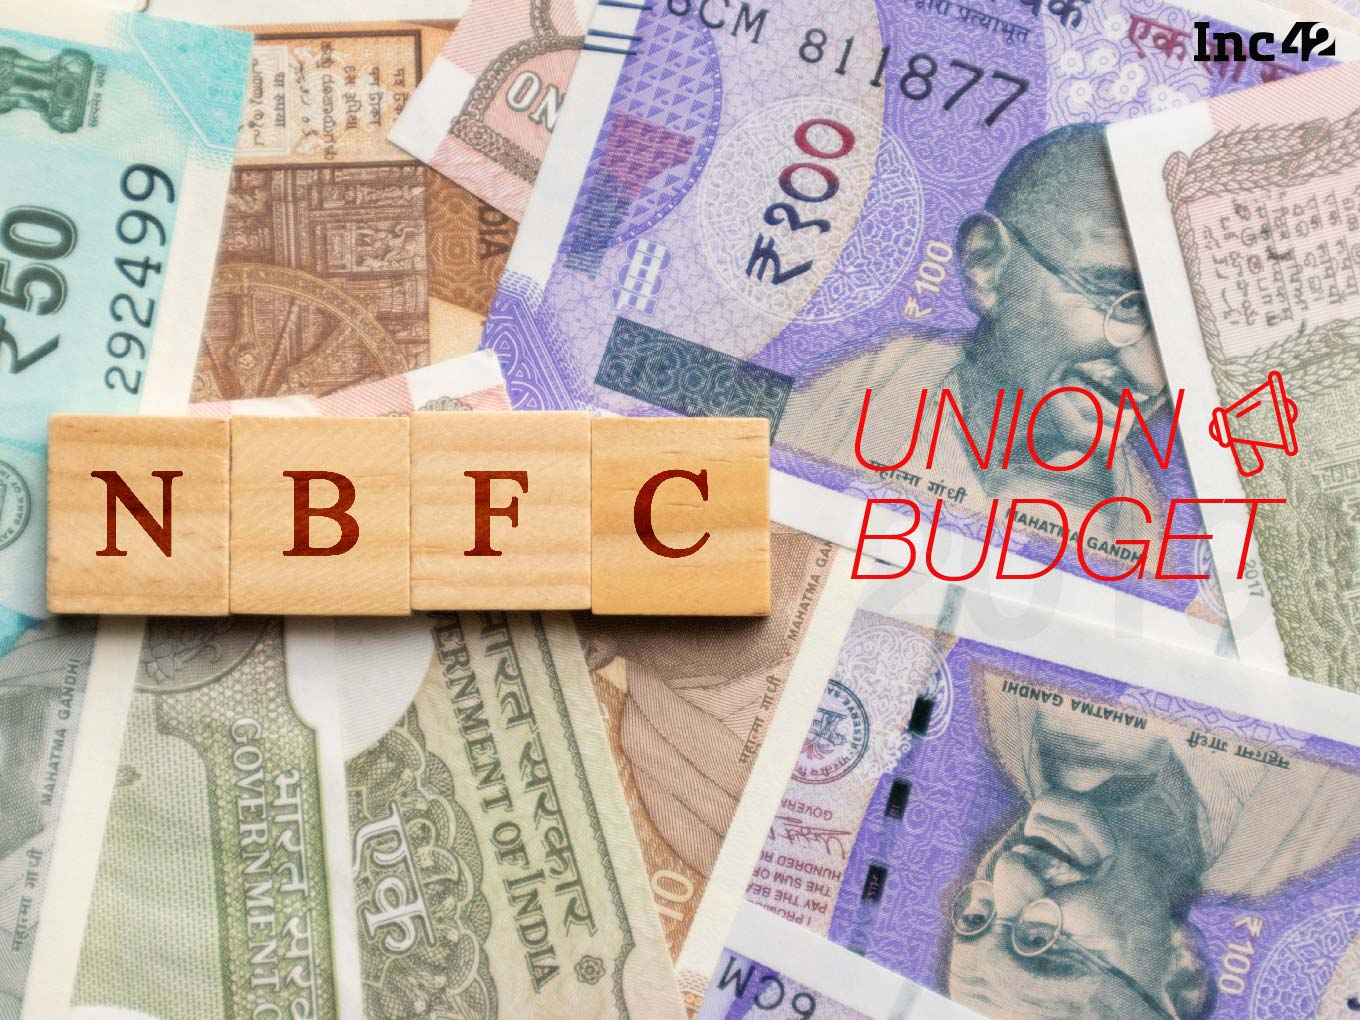 Union Budget 2019: NBFC Gets A Breath From N Sitharaman Budget